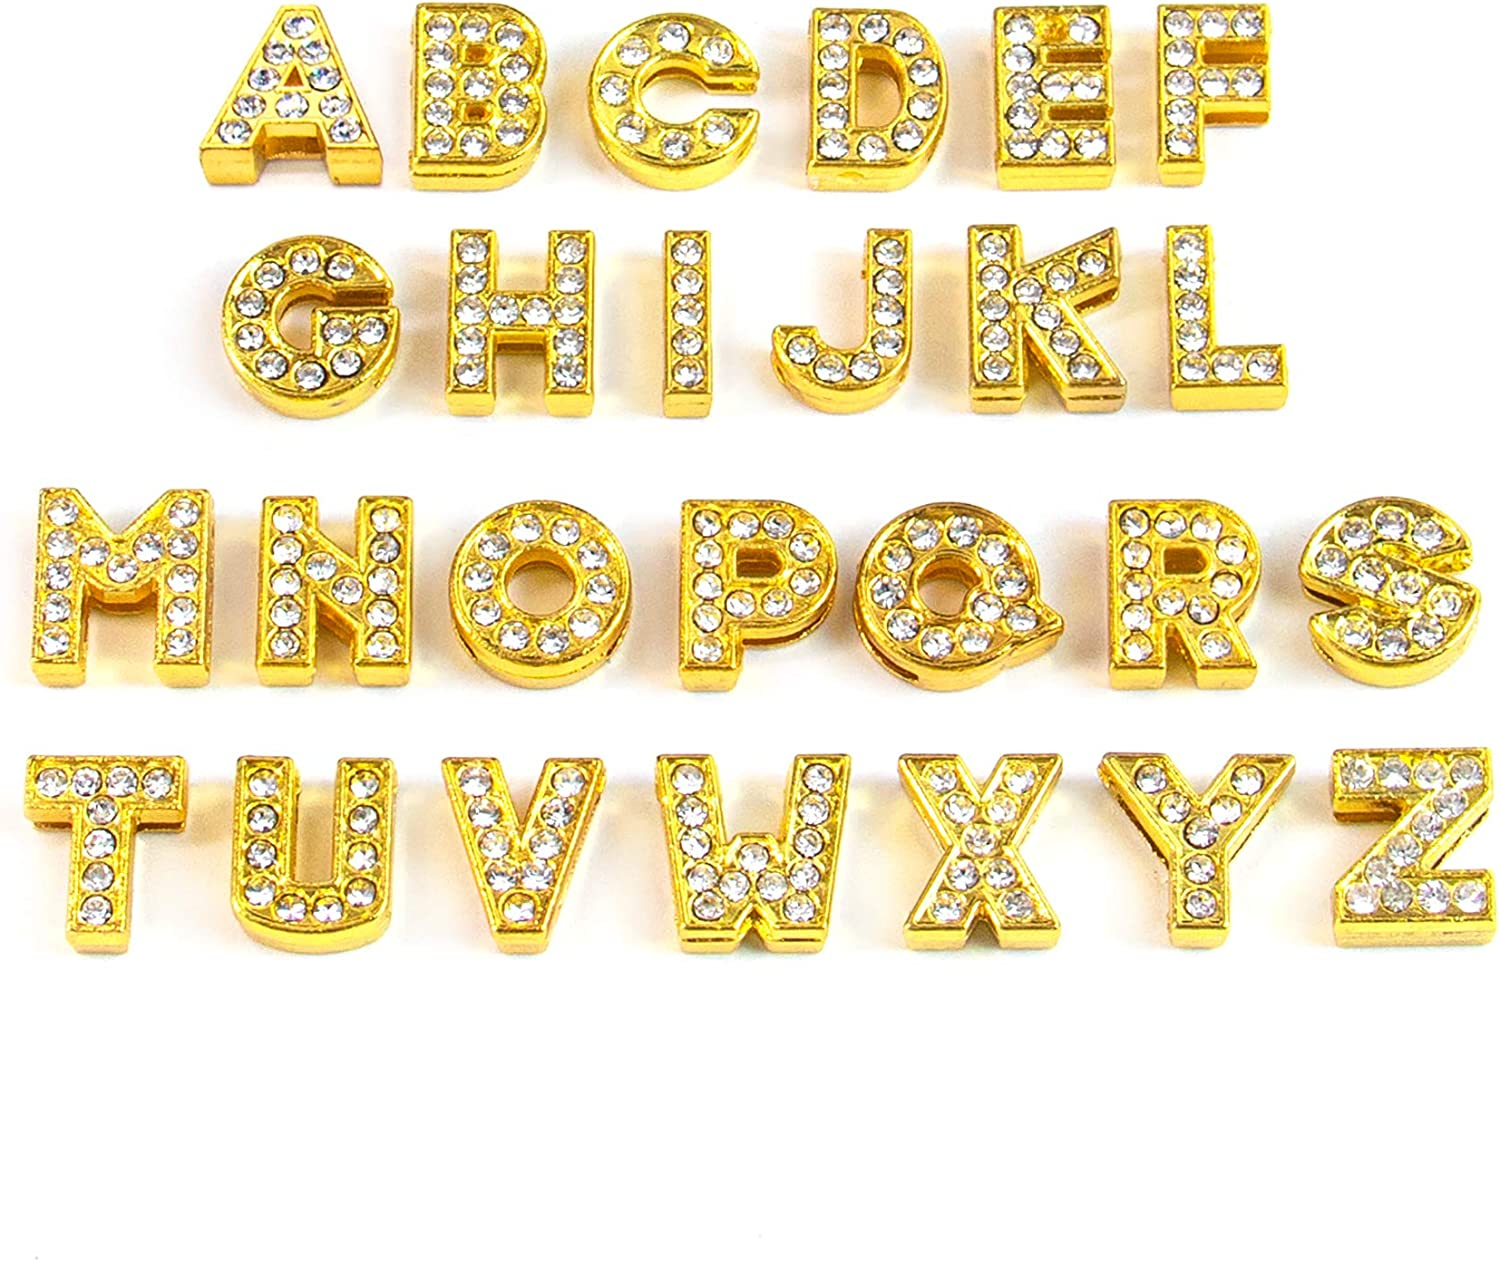 Fits Name Brand Style Charm Bracelets Silver Plated Jewelry A-Z Alphabet Letter Charm Bead Openwork Clear Rhinestones